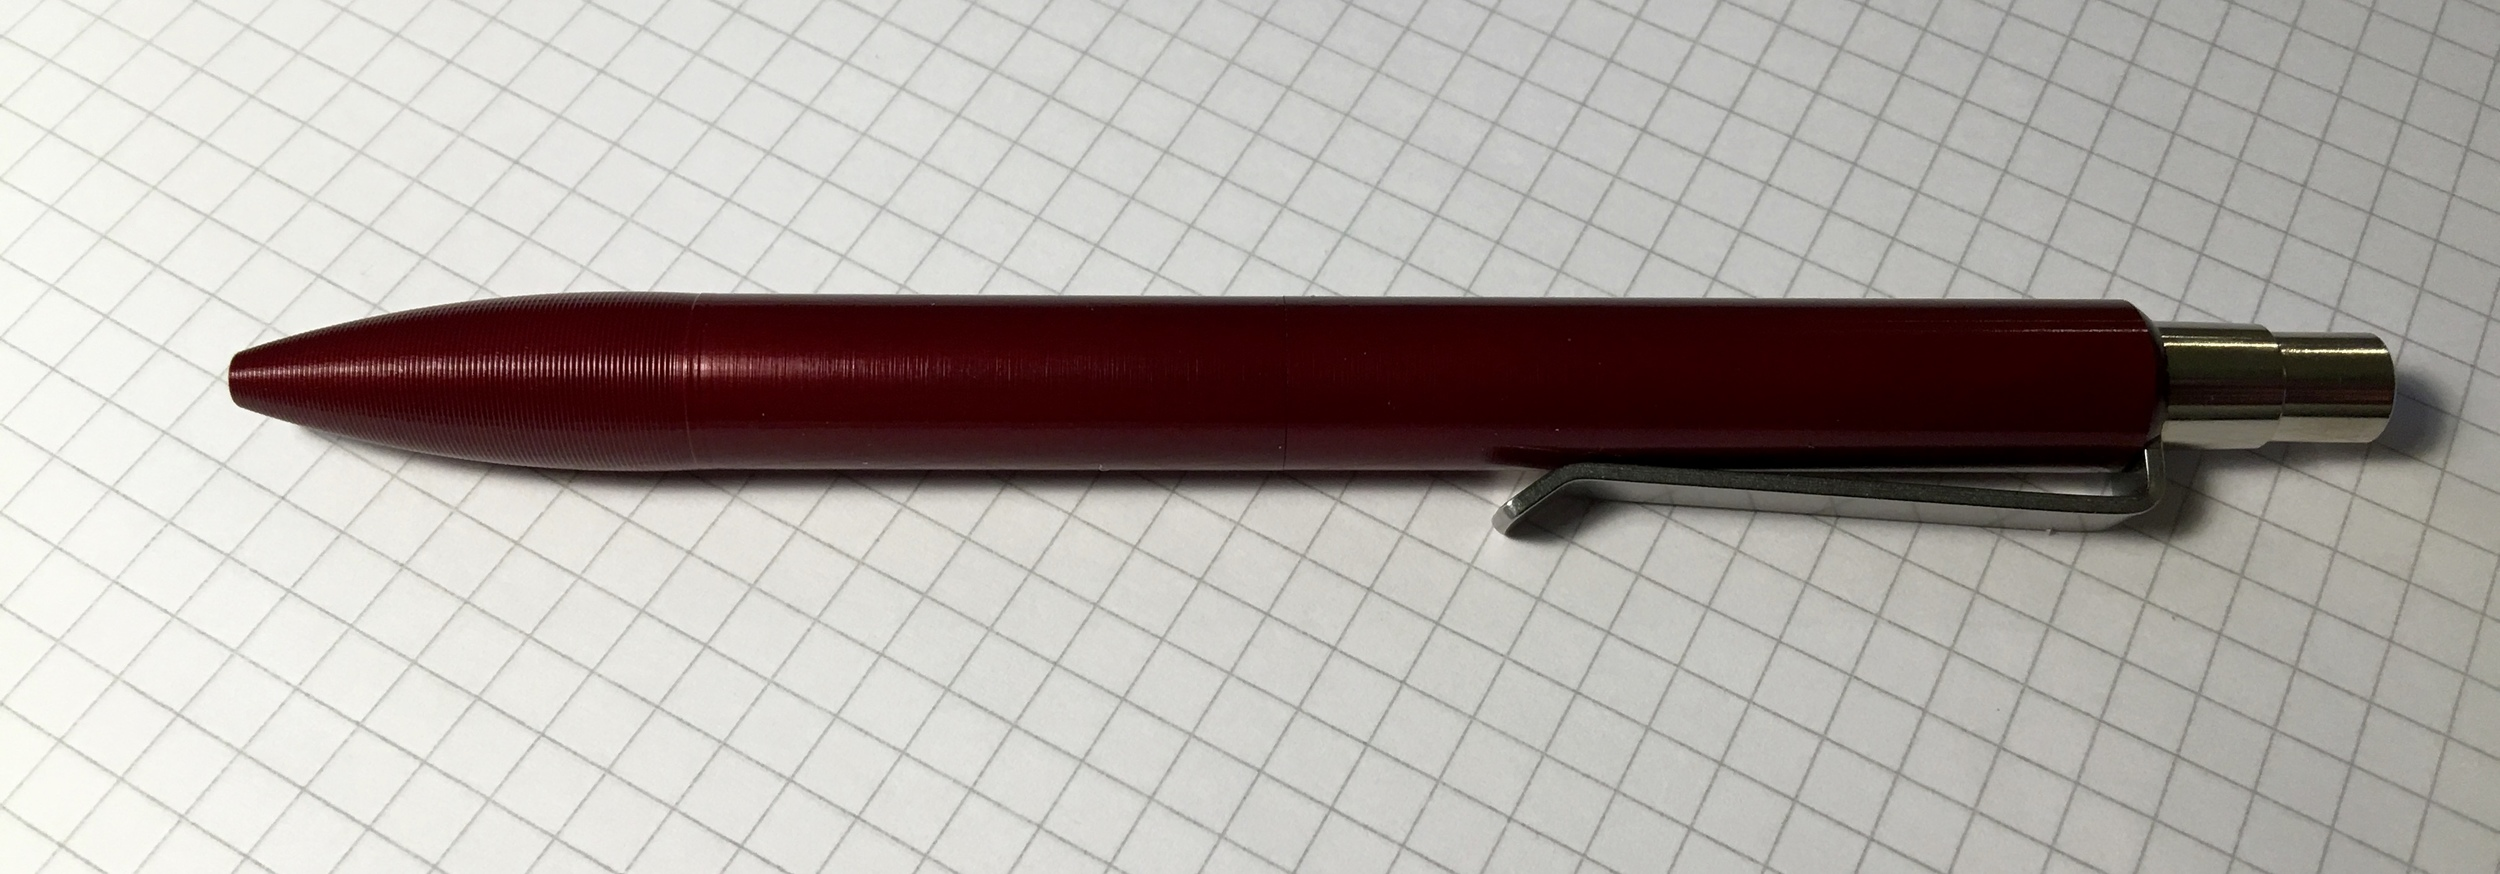 The Tactile Turn Mover, in Anodized Red Aluminum